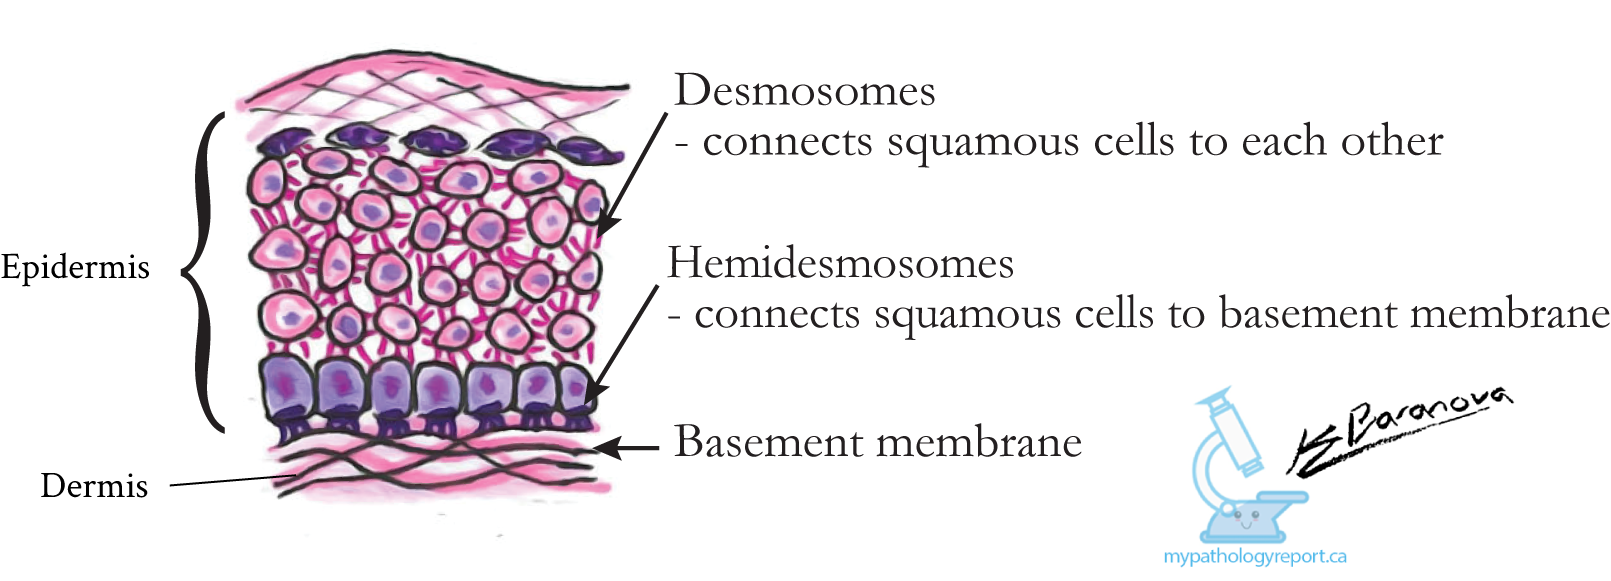 Demosomes and Hemidesmosome